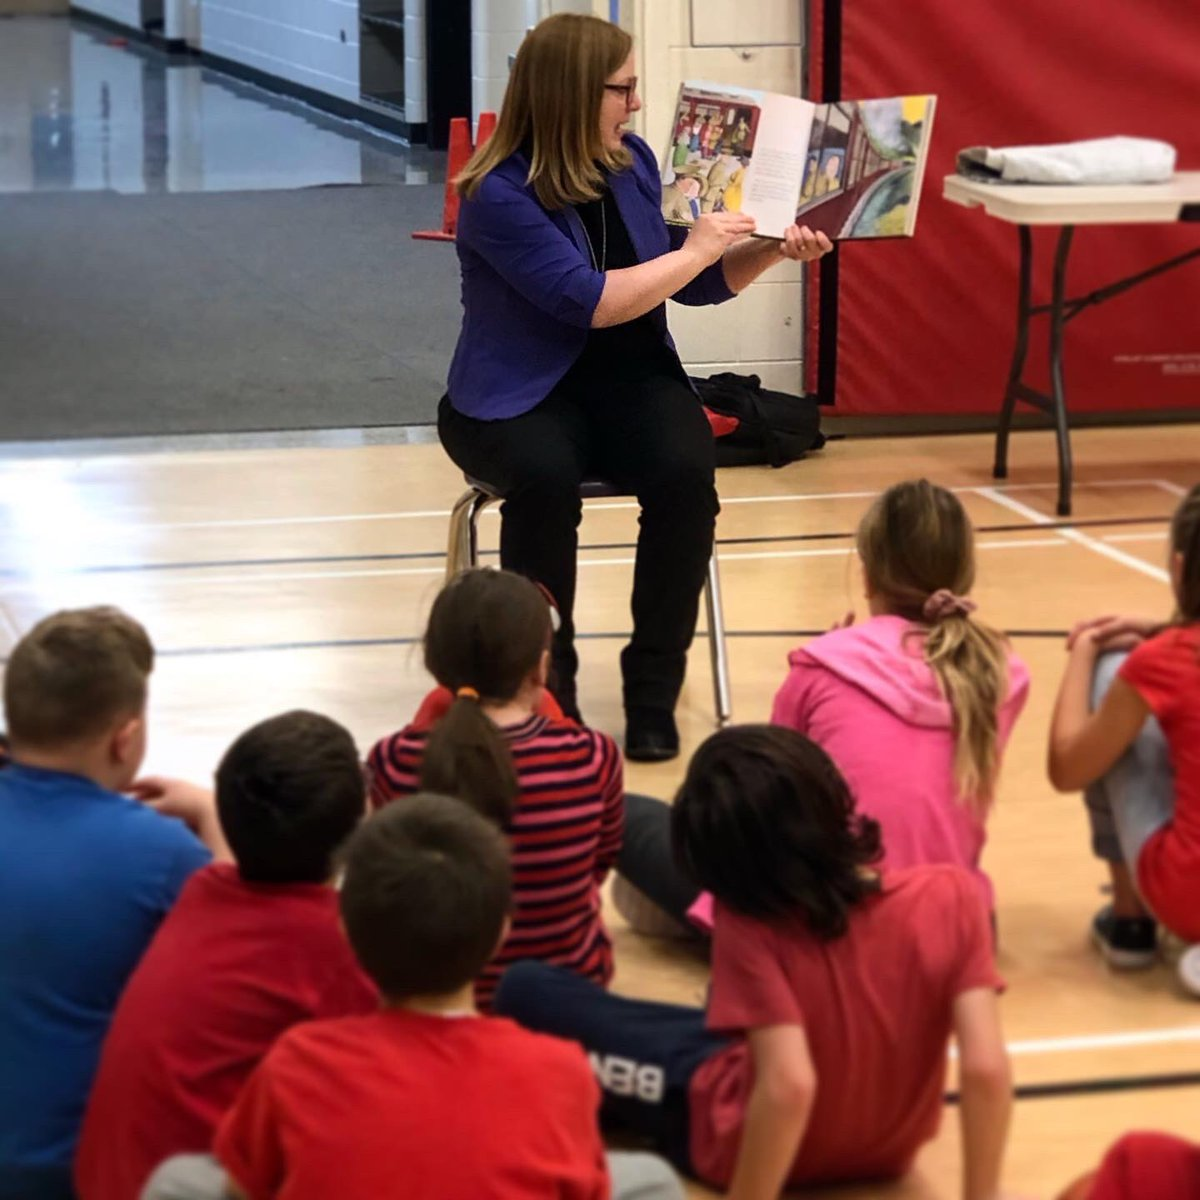 test Twitter Media - Thank you St. Avila Before & After School program for sharing your time with me for #ilovetoread month! Your smiles and great questions made my day! @EcoleStAvila #mbpoli https://t.co/AyWaRKCRKb